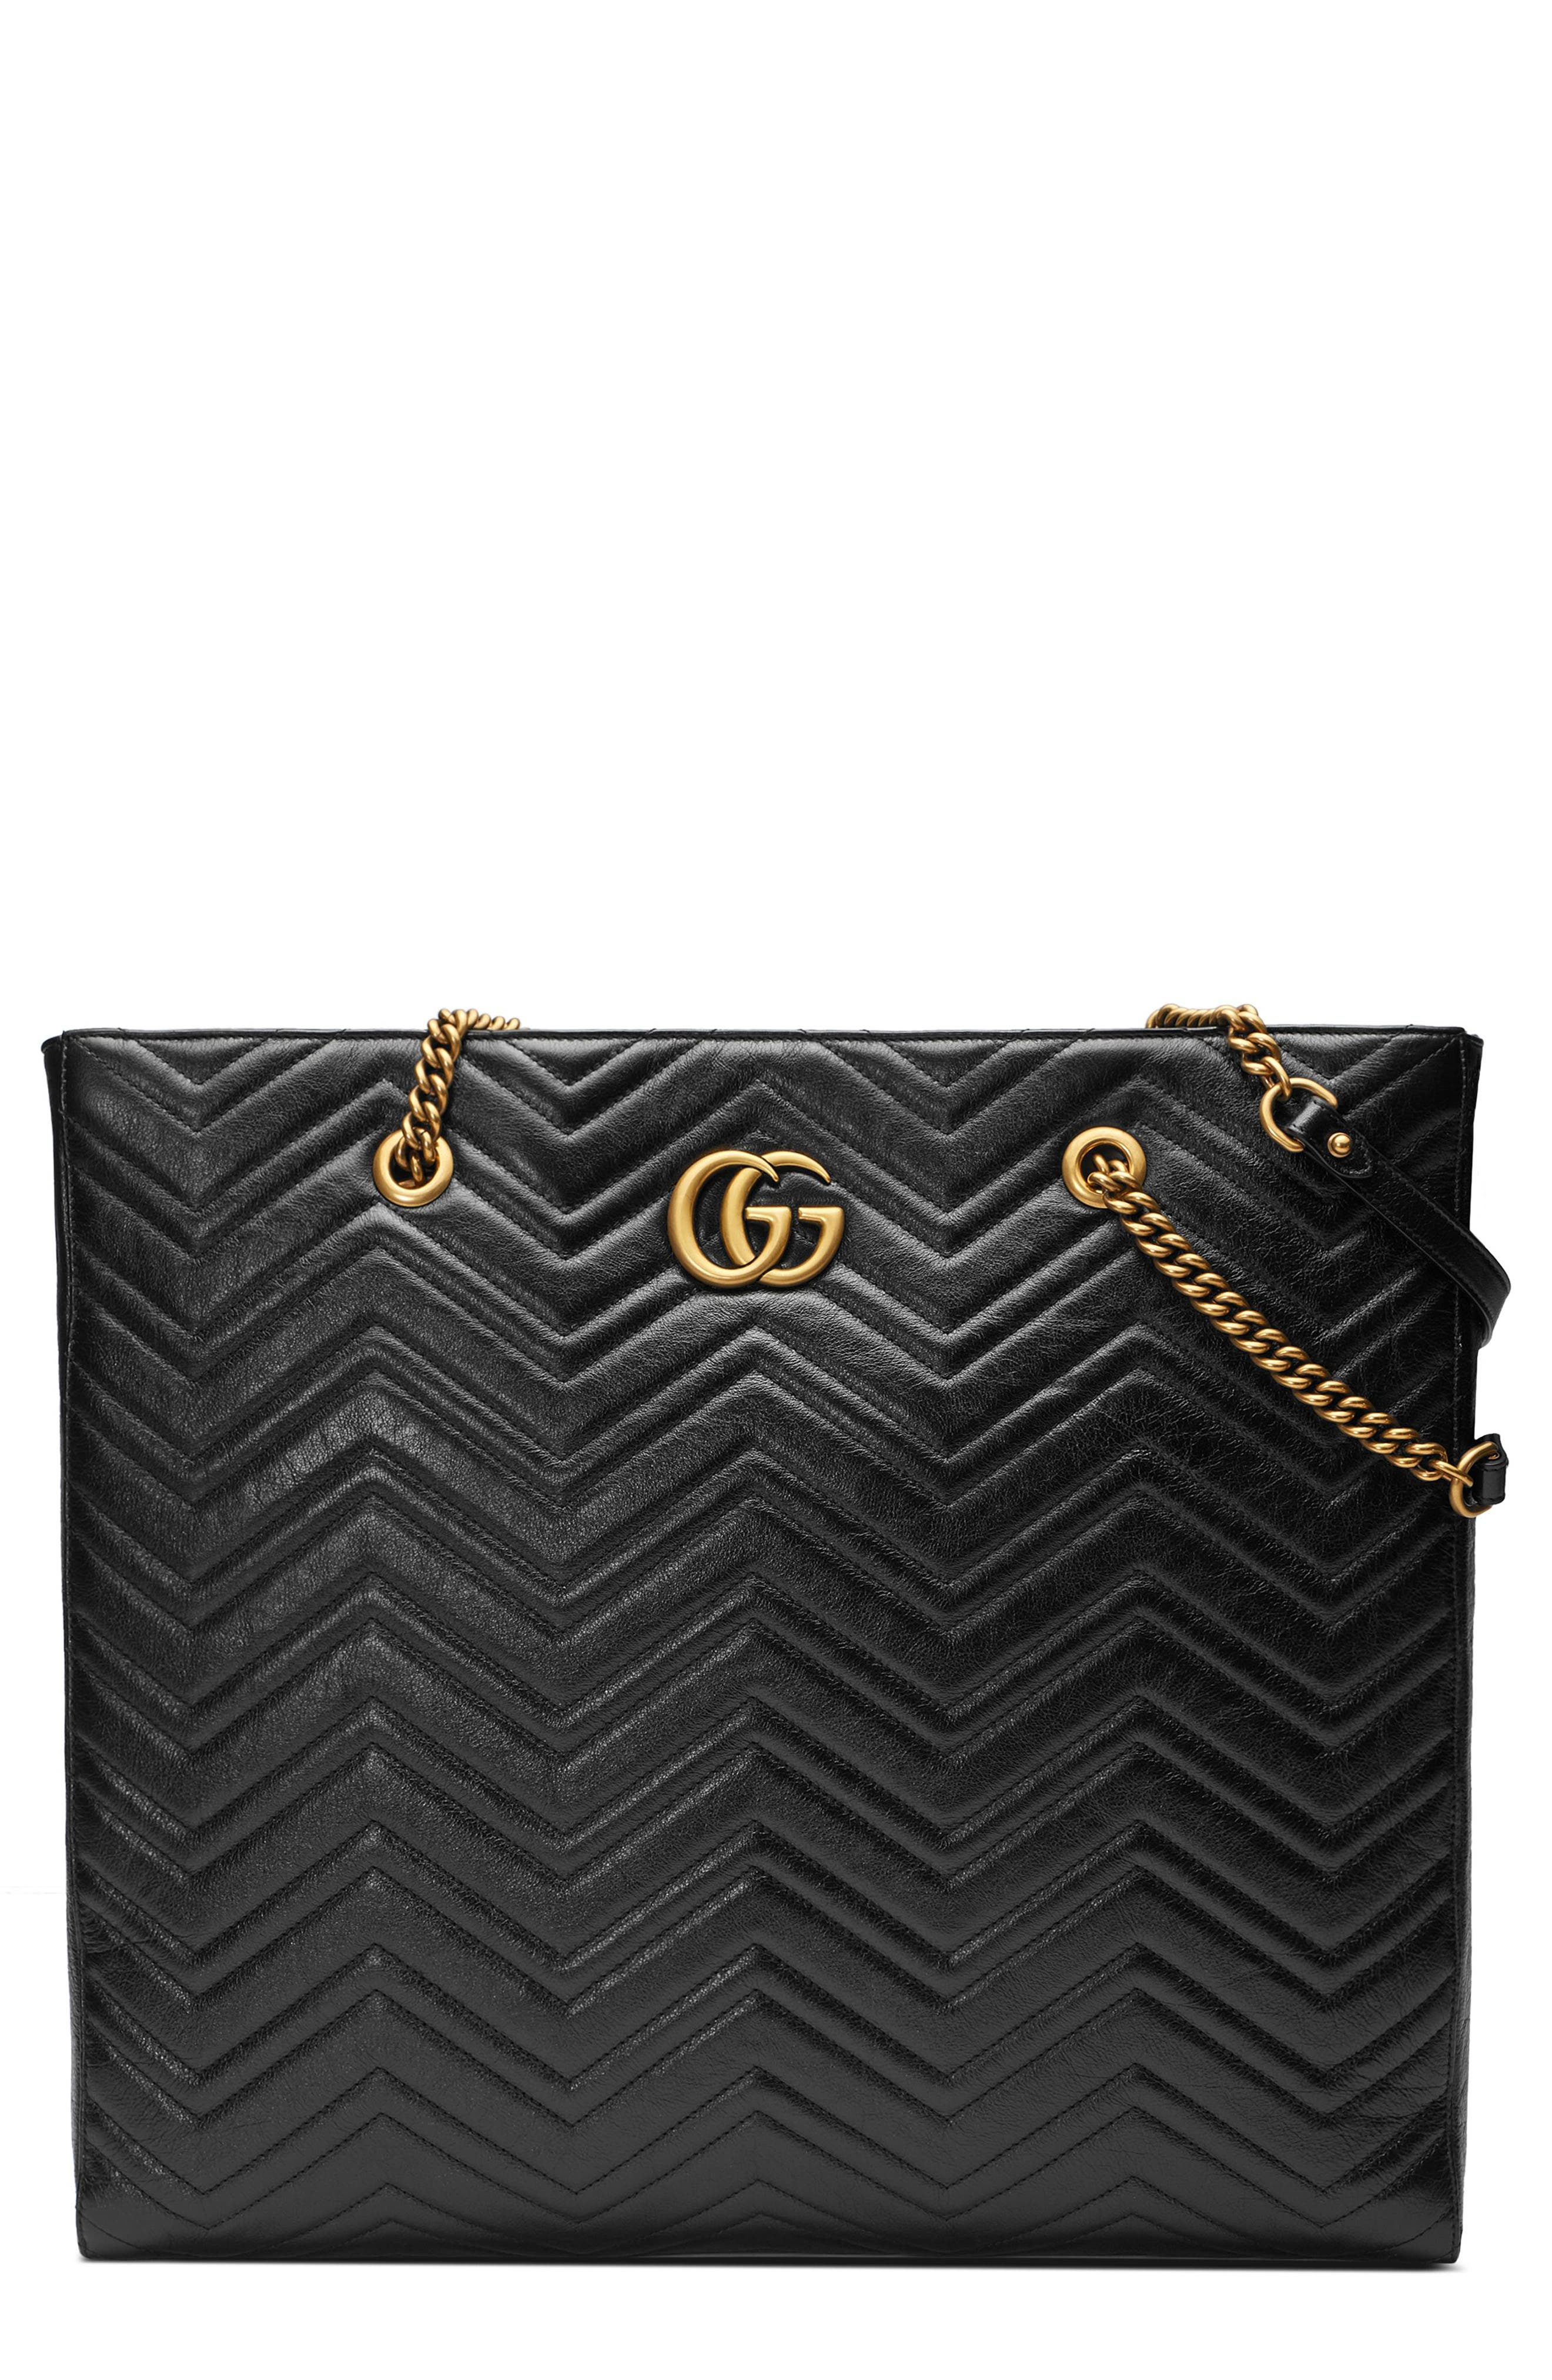 GG Marmont 2.0 Matelassé Leather North/South Tote Bag,                             Main thumbnail 1, color,                             Nero/ Nero